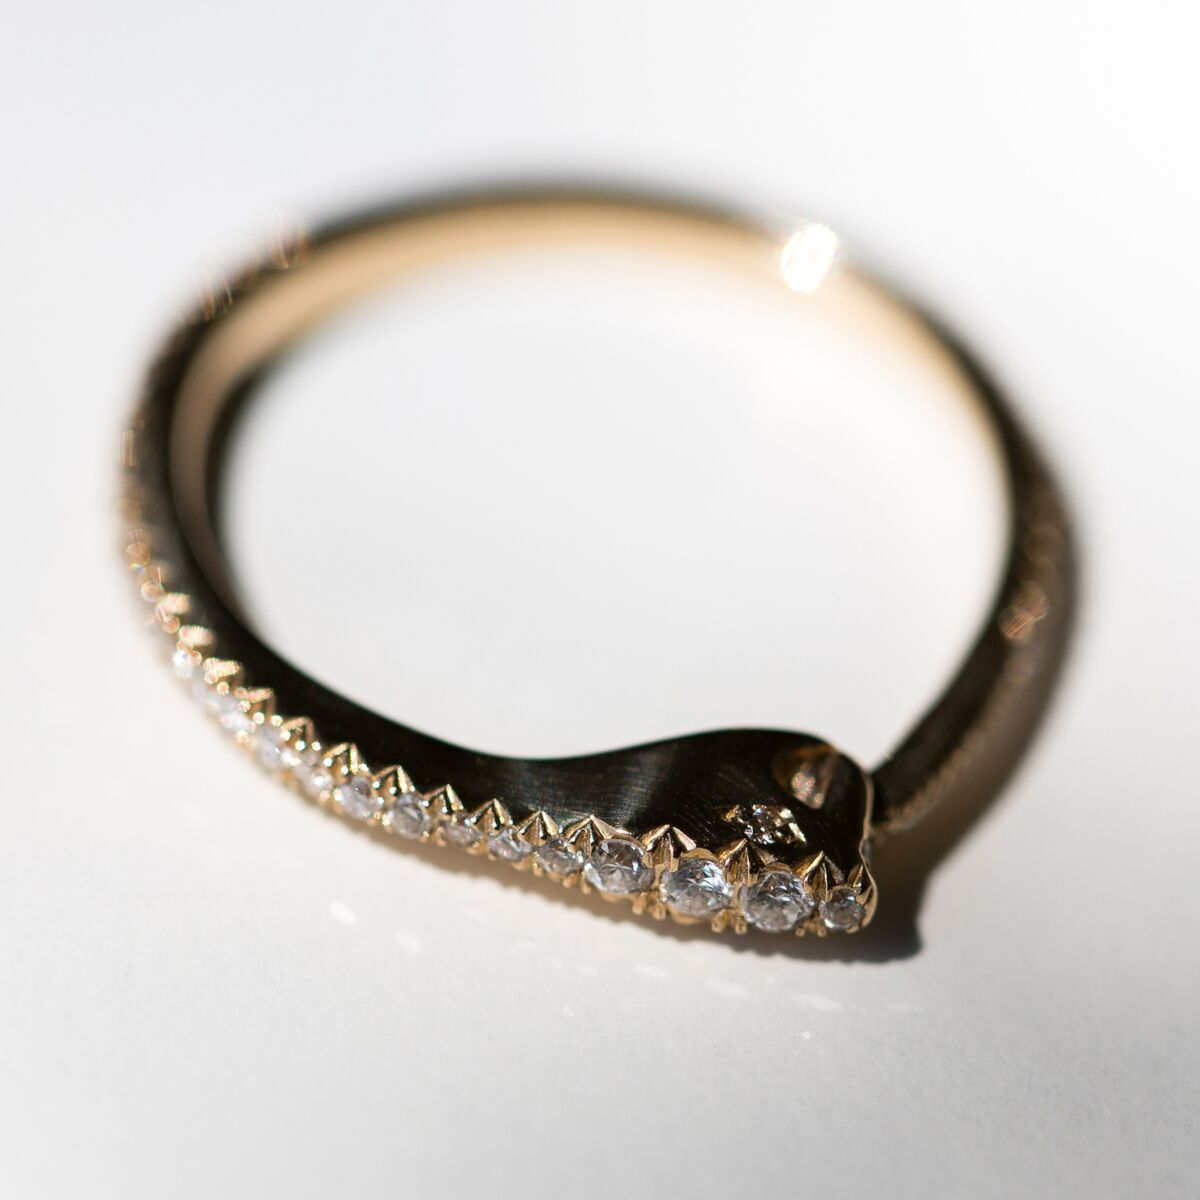 Ouroboros with Diamonds image